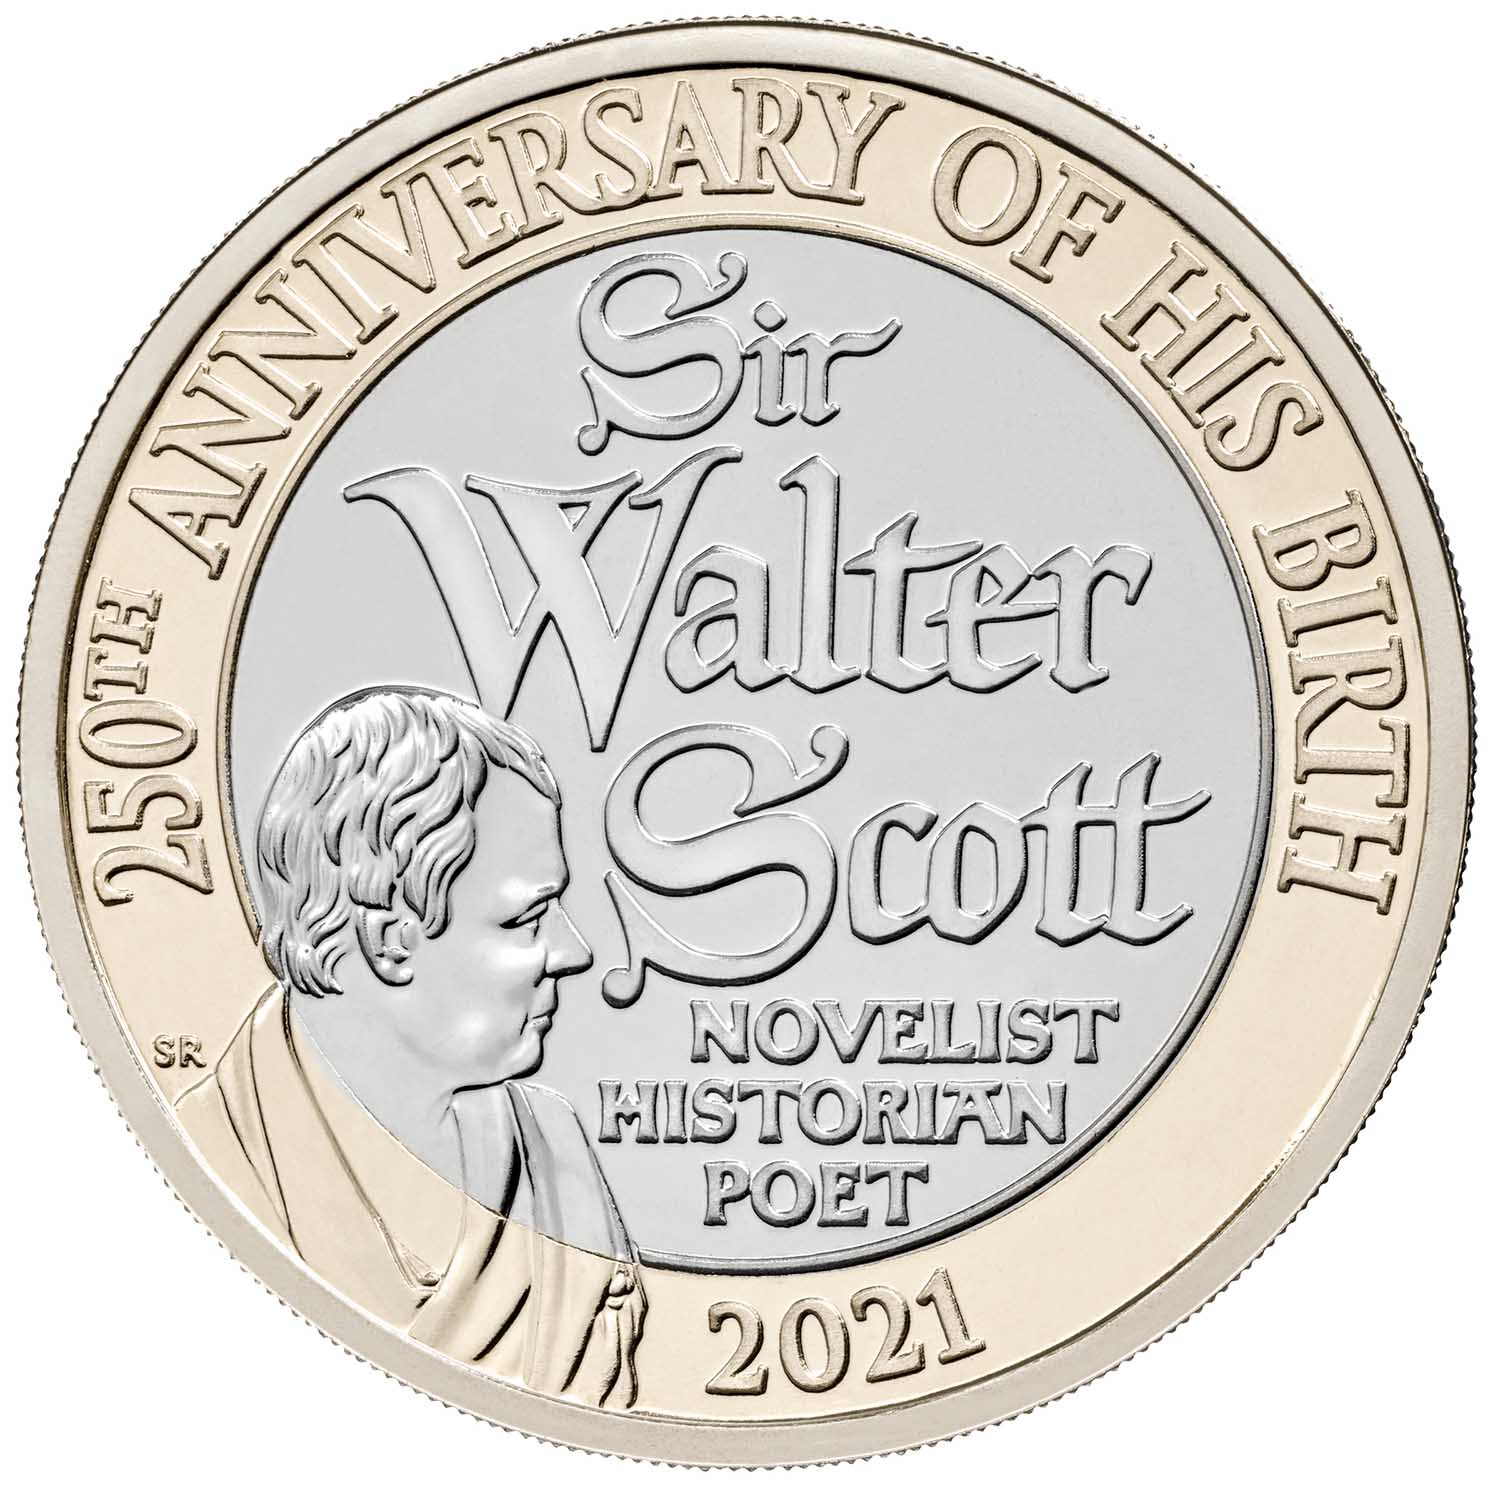 Sir Walter Scott coin